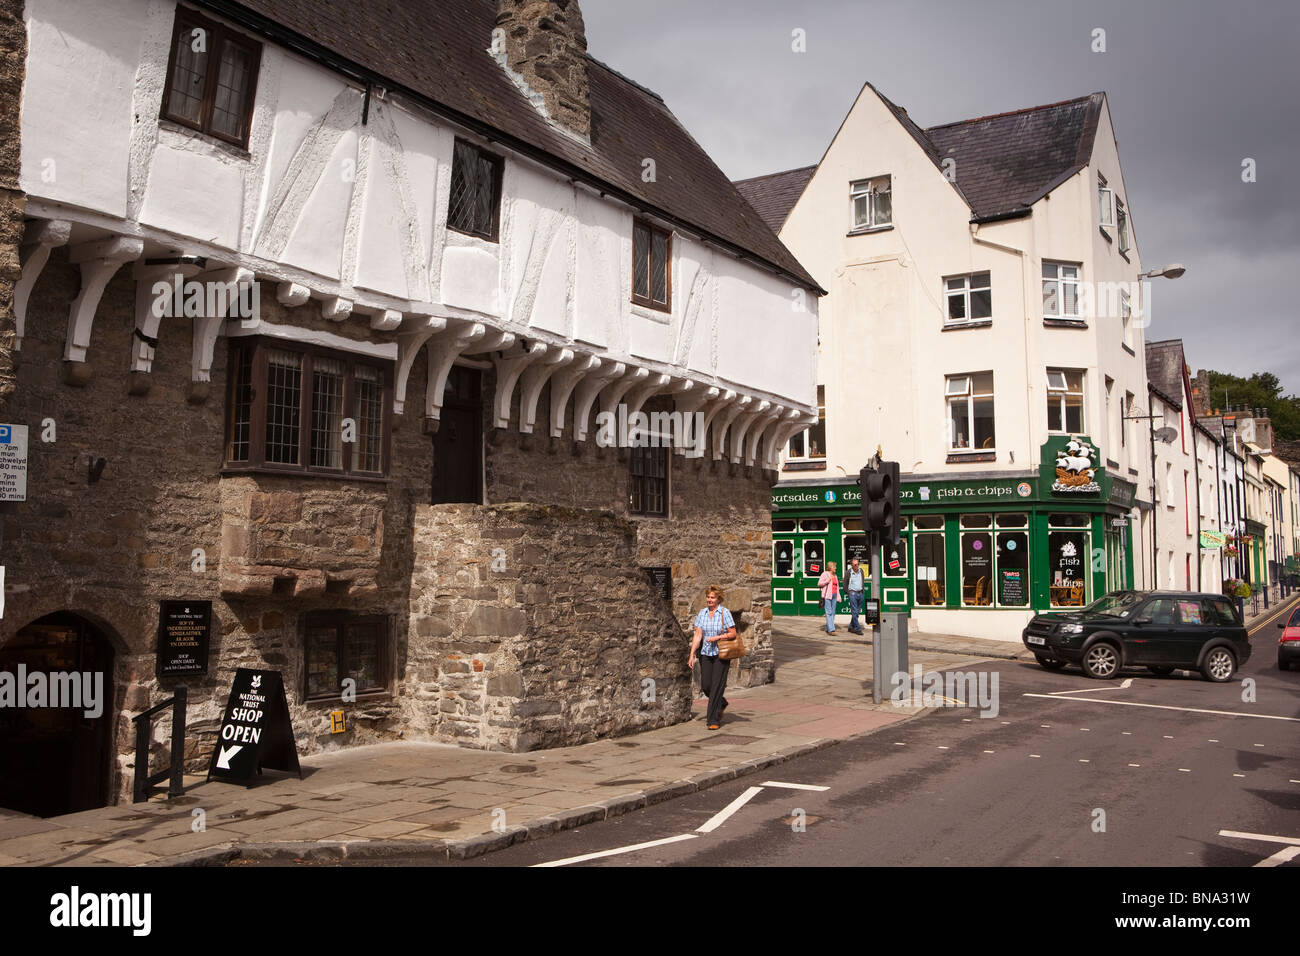 Wales, Gwynedd, Conway, Castle Street, Aberconwy House,14th Century merchant's house (NT) - Stock Image